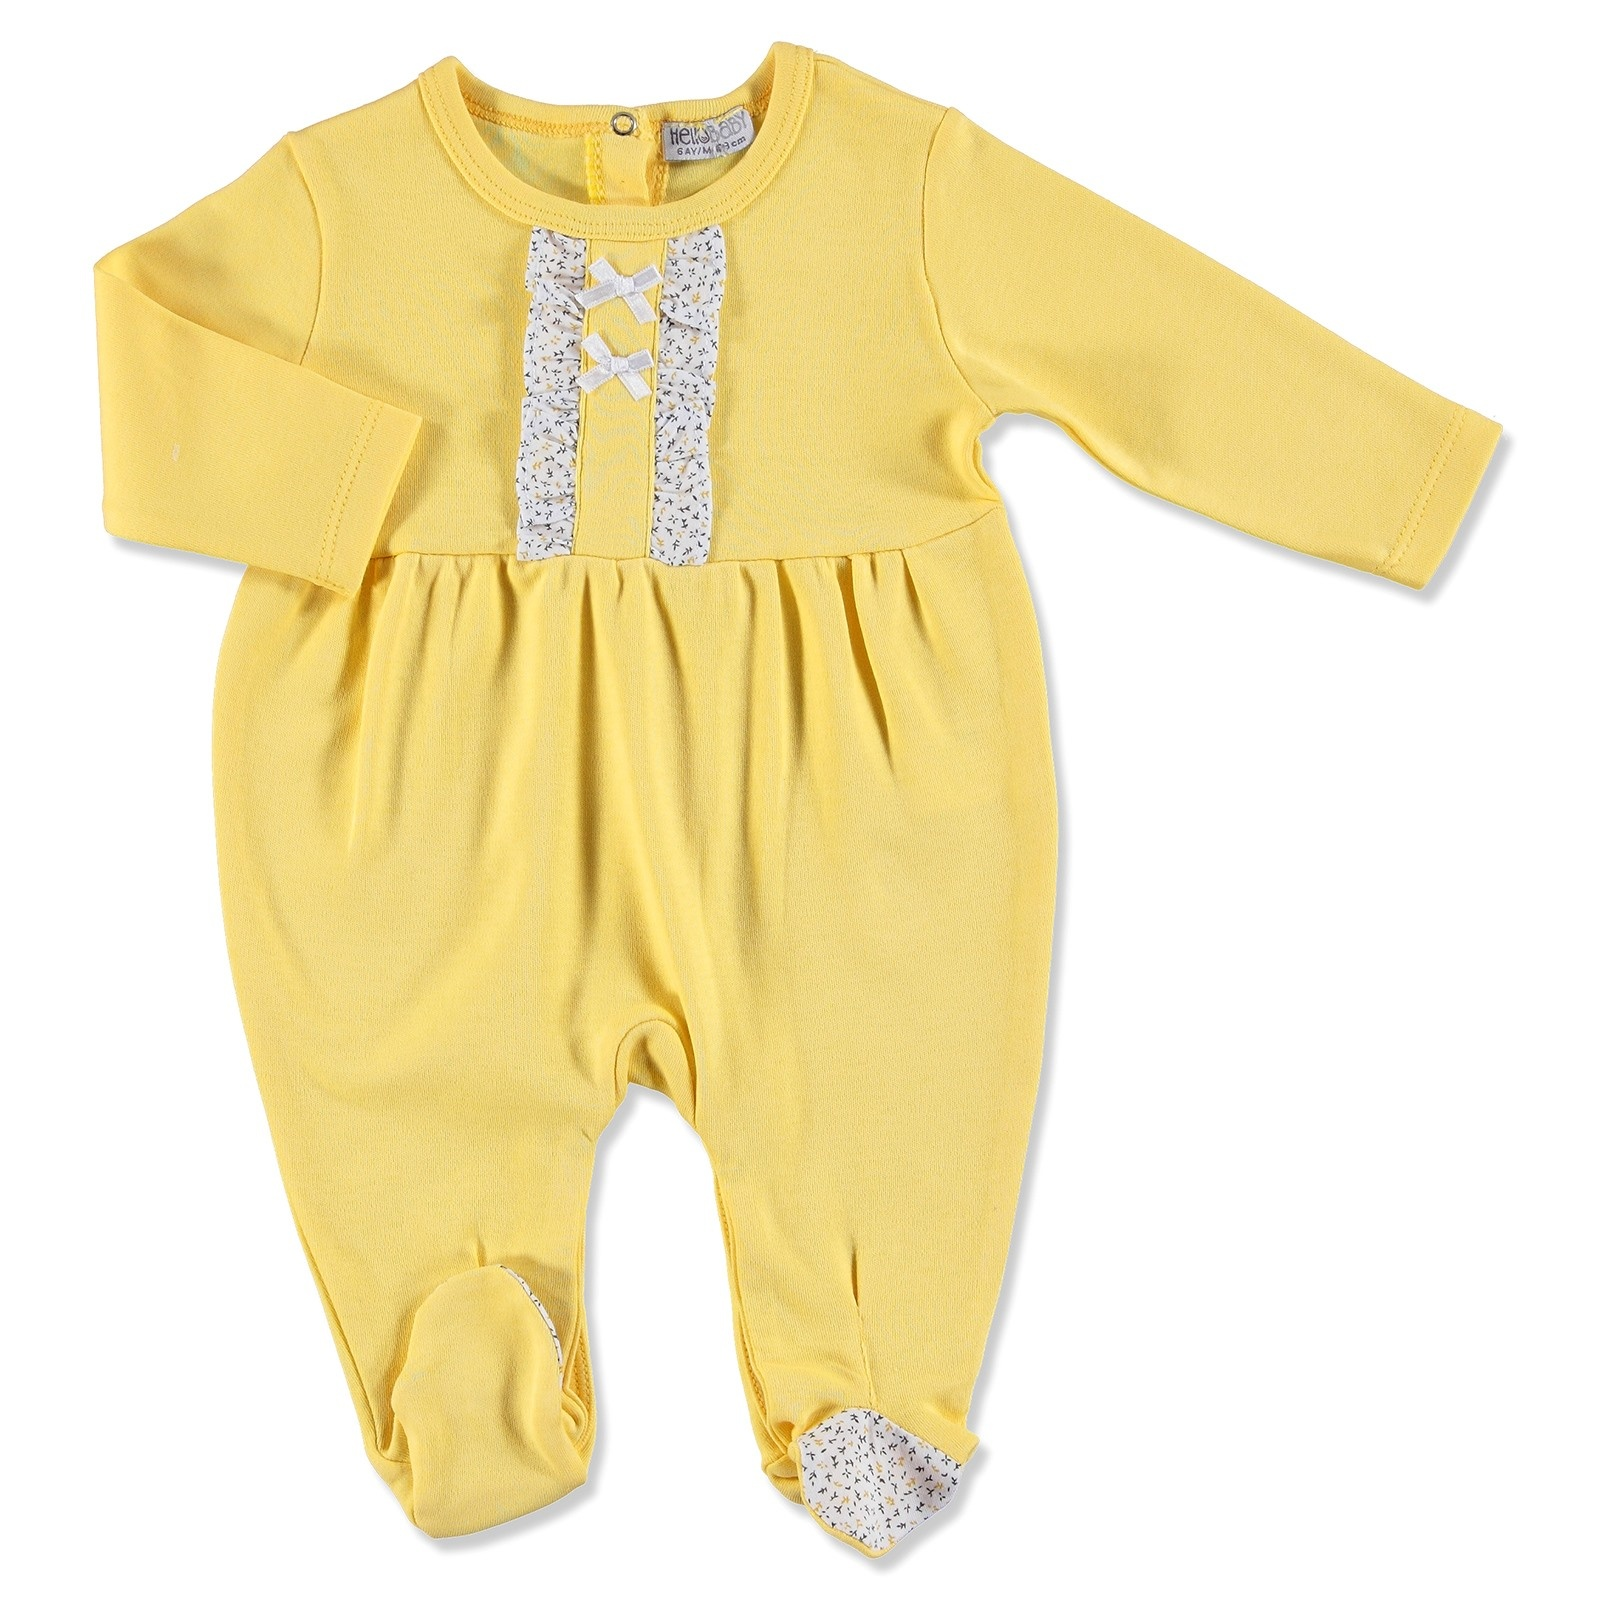 Ebebek HelloBaby Yellow Flower Theme Baby Footed Romper